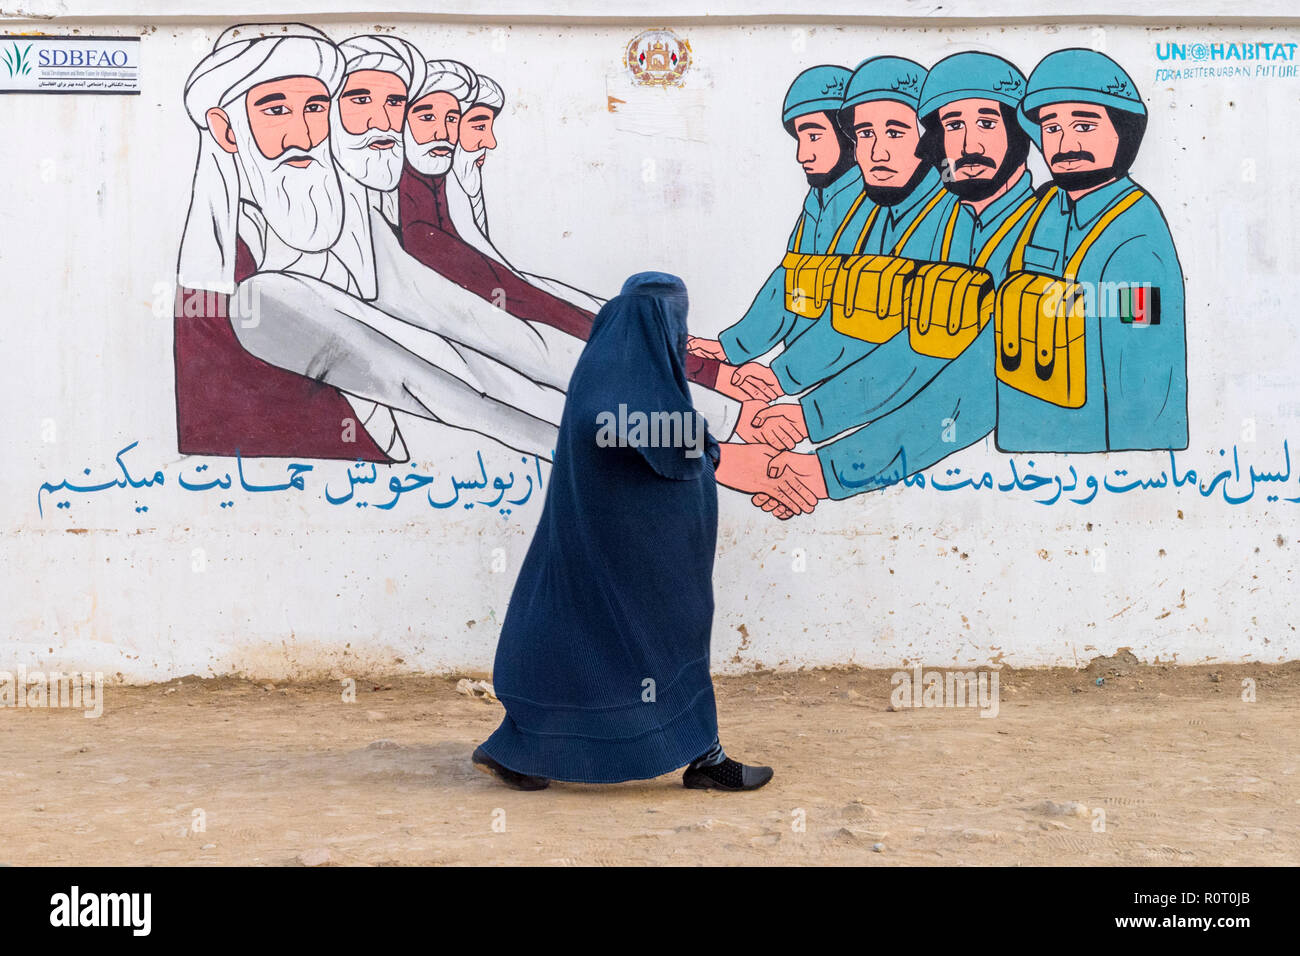 Woman Walking By Sponsored Naive Propaganda Mural On The Street Side About The Army And The Clerics Caring Of The People, Mazar-e Sharif, Afghanistan Stock Photo